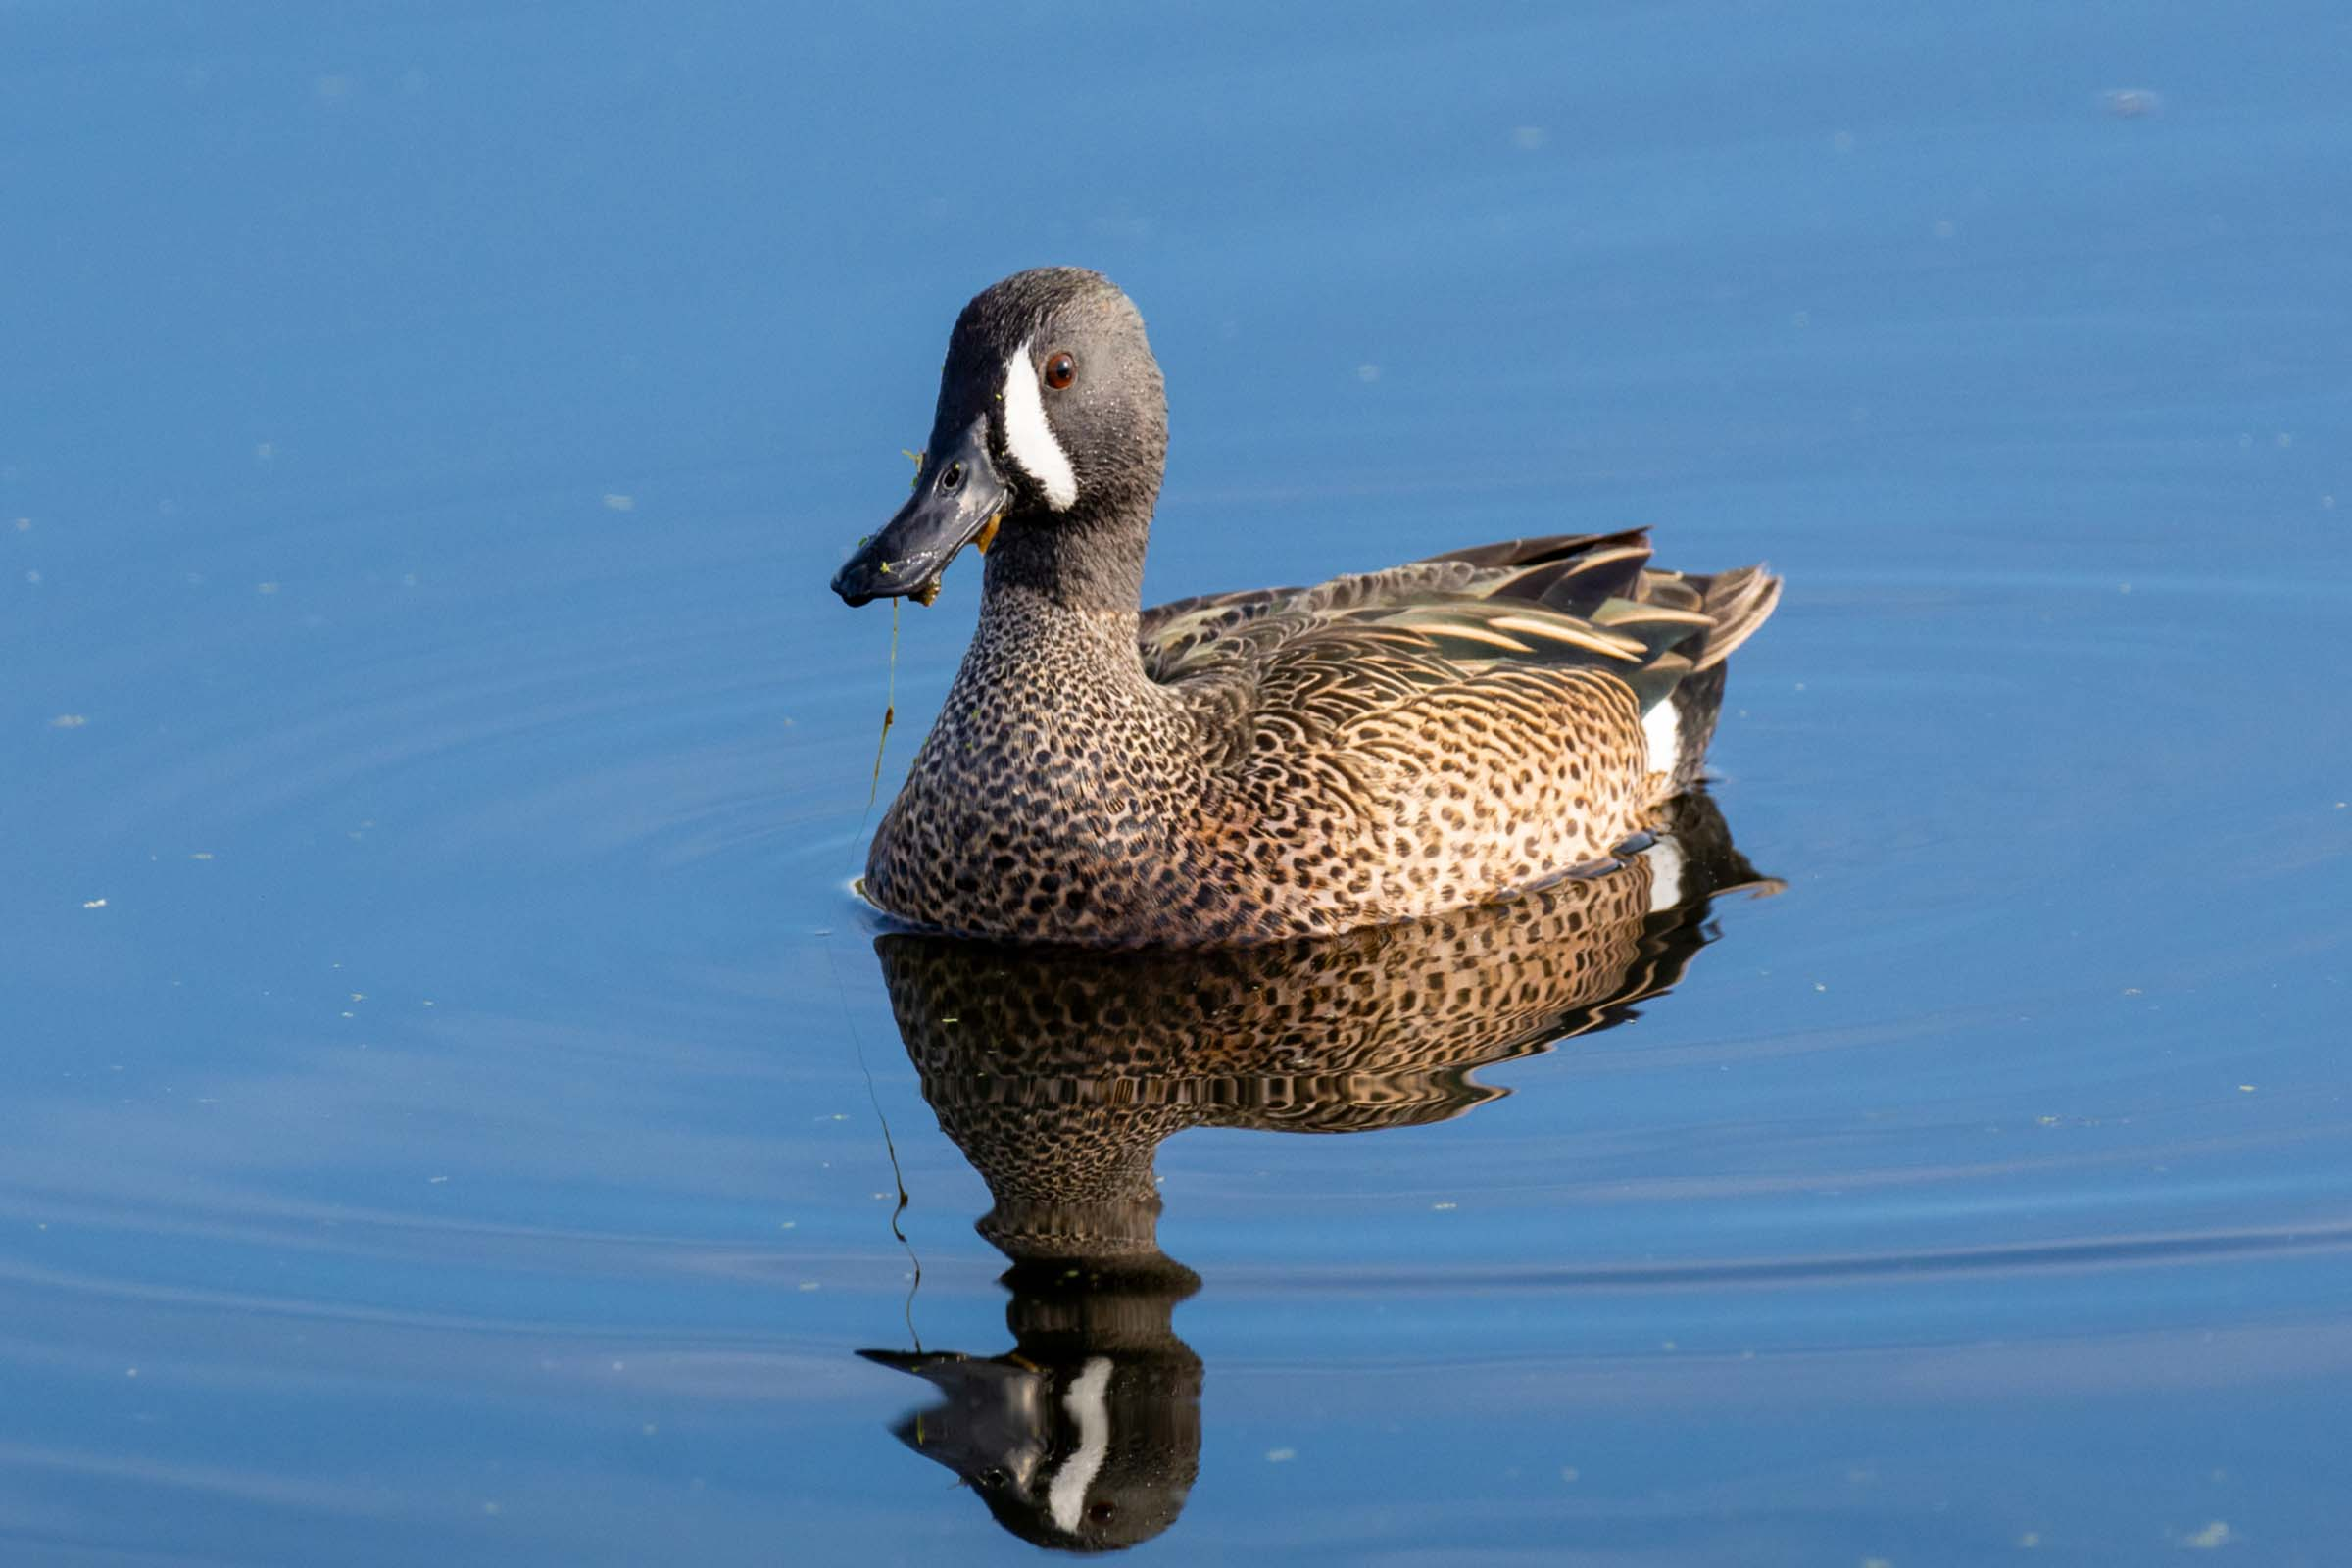 Brown duck floating on calm waters